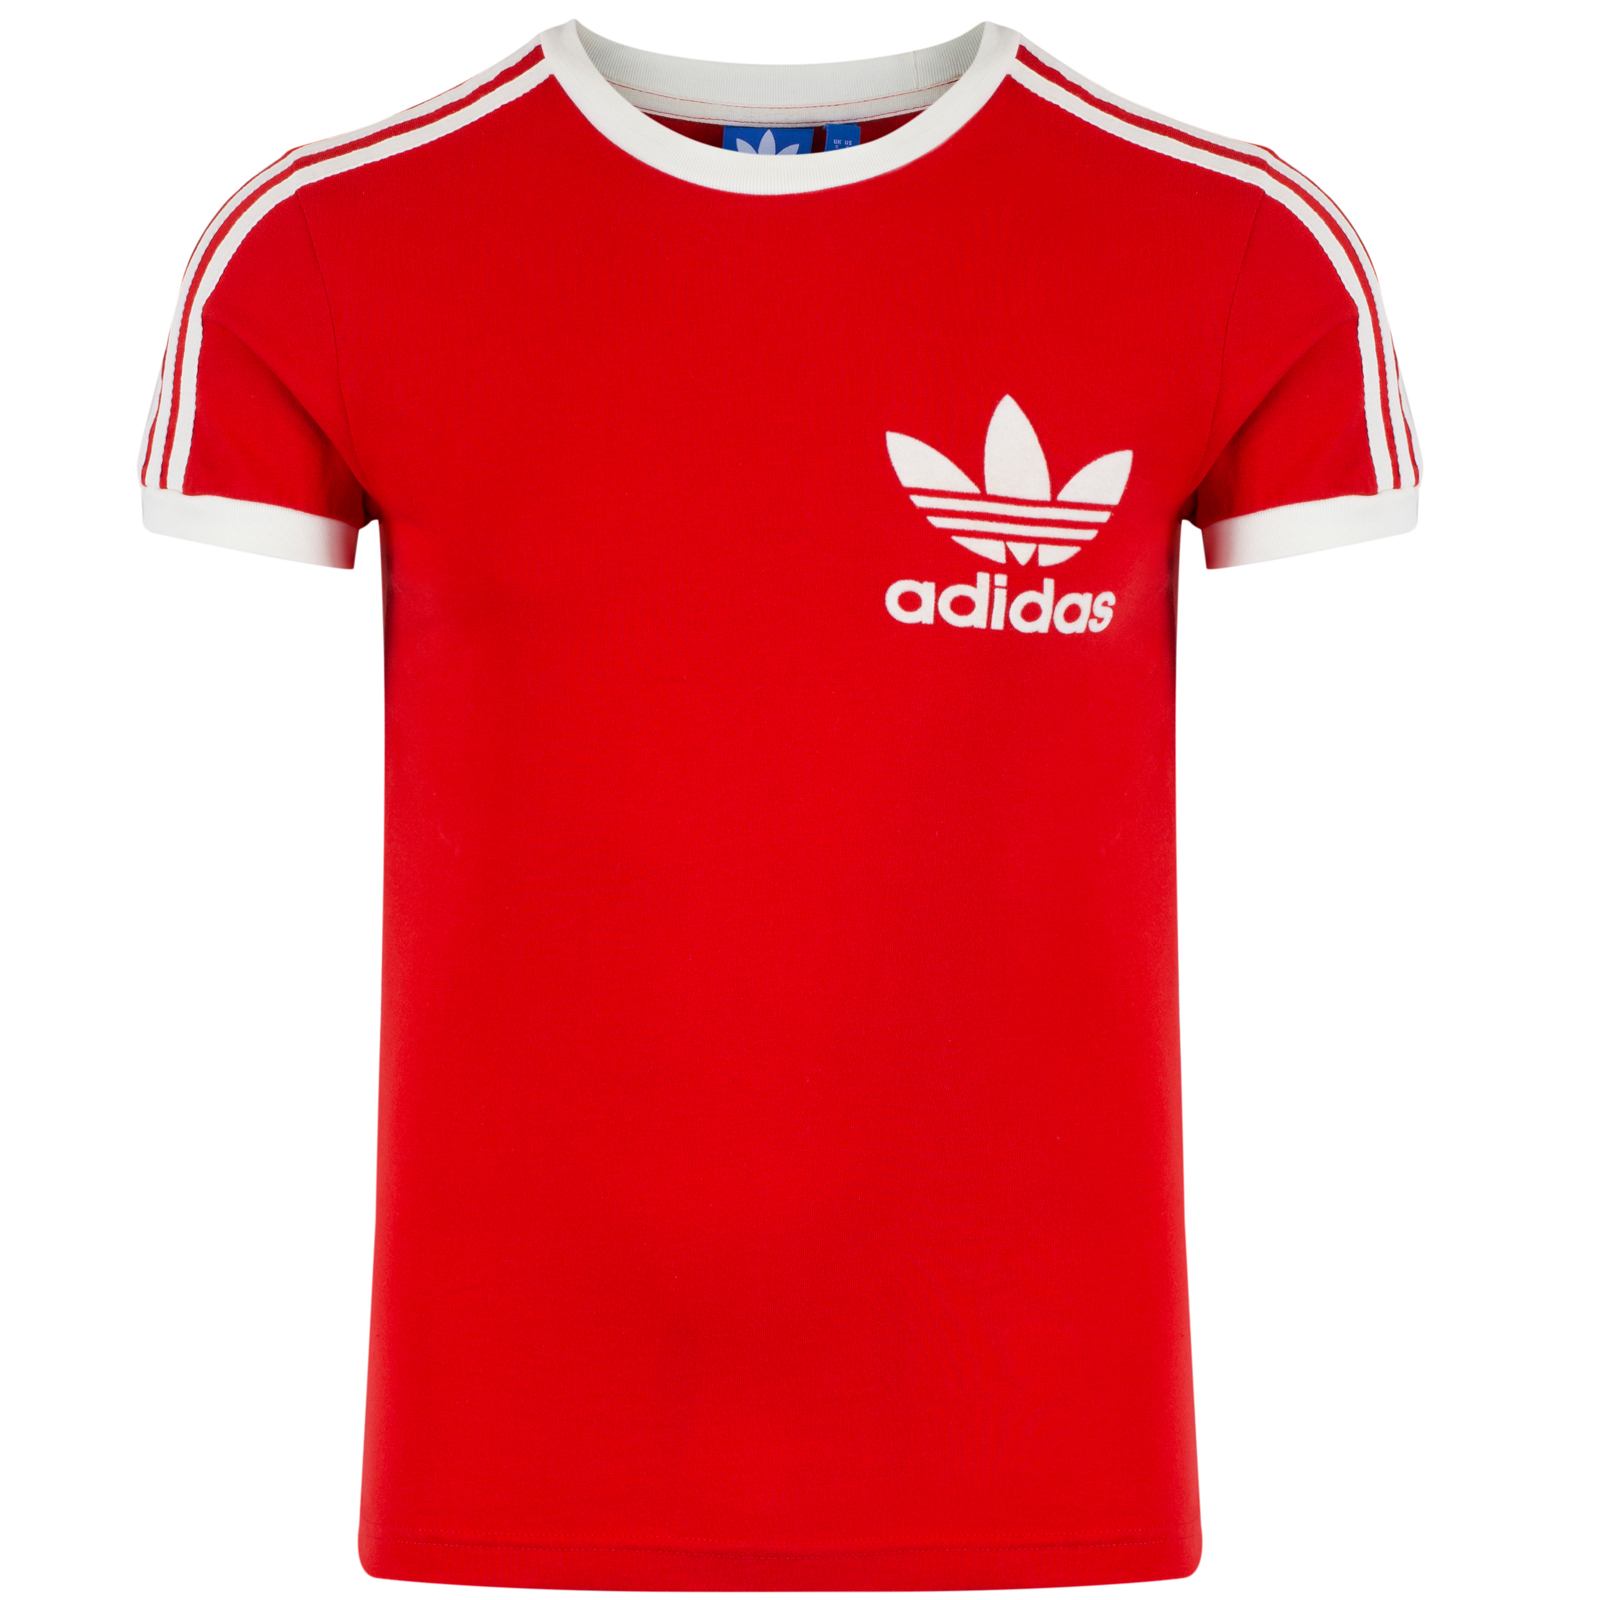 adidas 3 stripes trefoil tee damen t shirt w67332 white pictures to. Black Bedroom Furniture Sets. Home Design Ideas